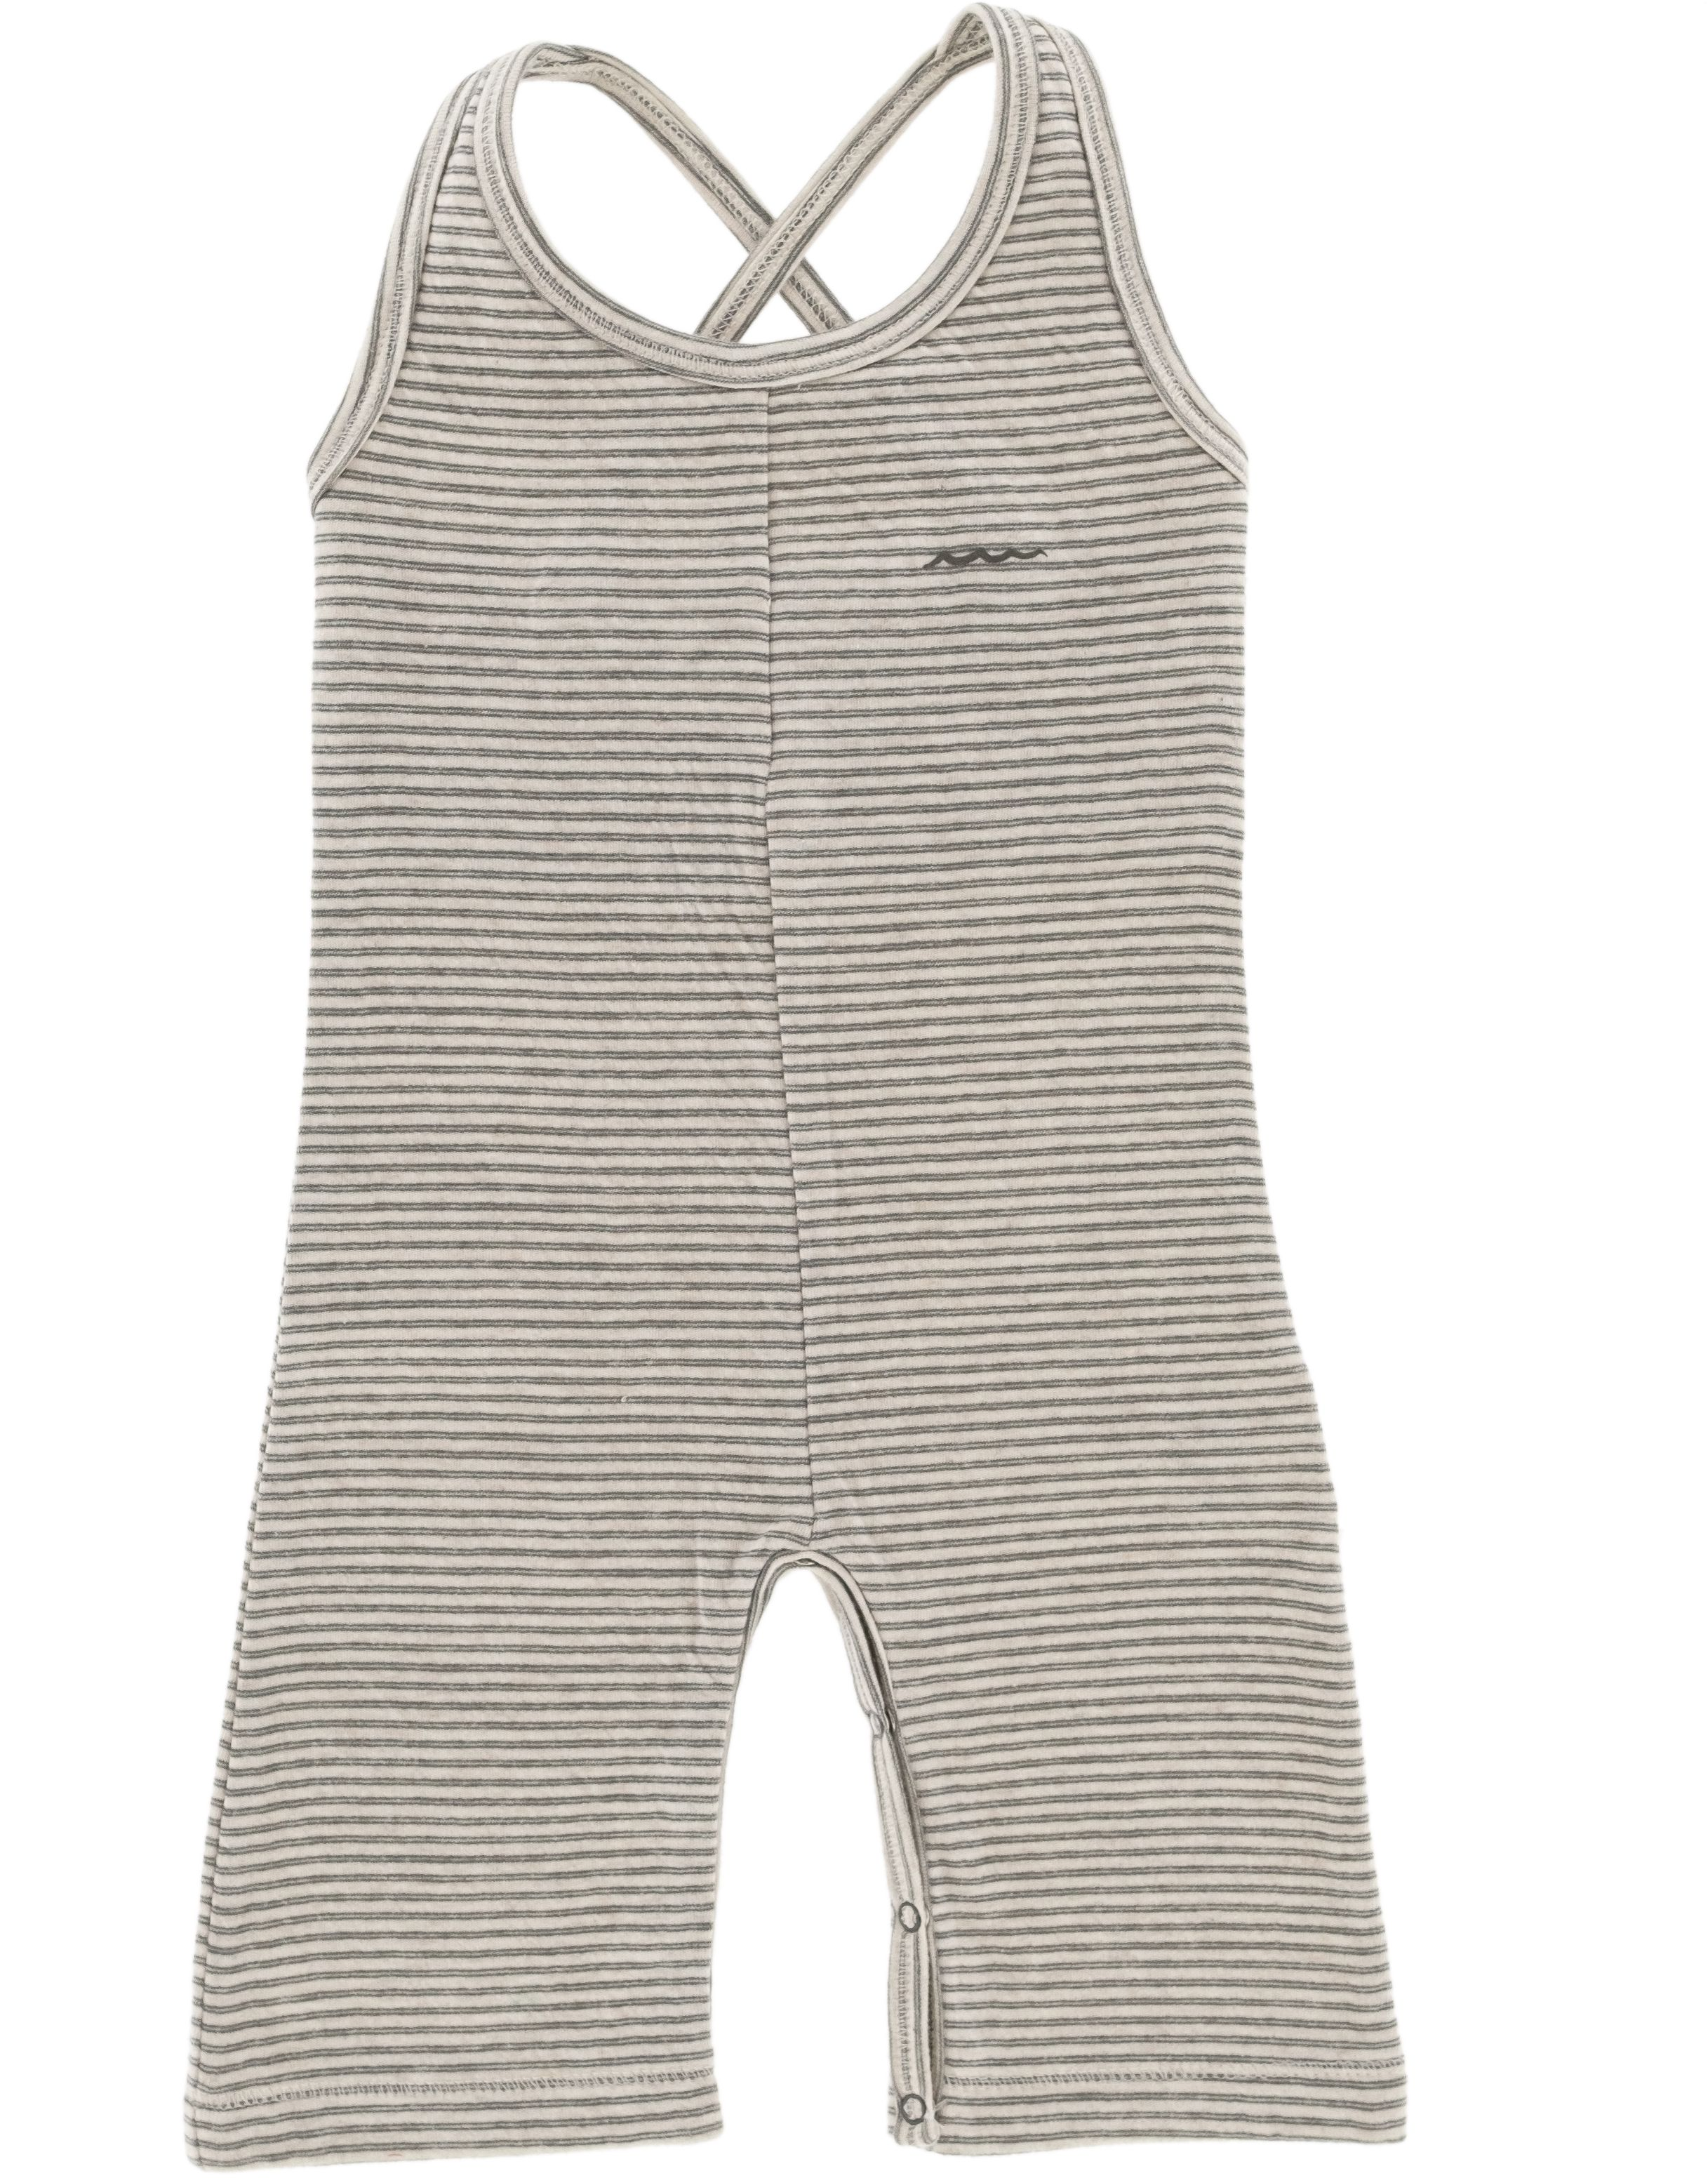 Riffle Amsterdam Playsuit grey/green stripe